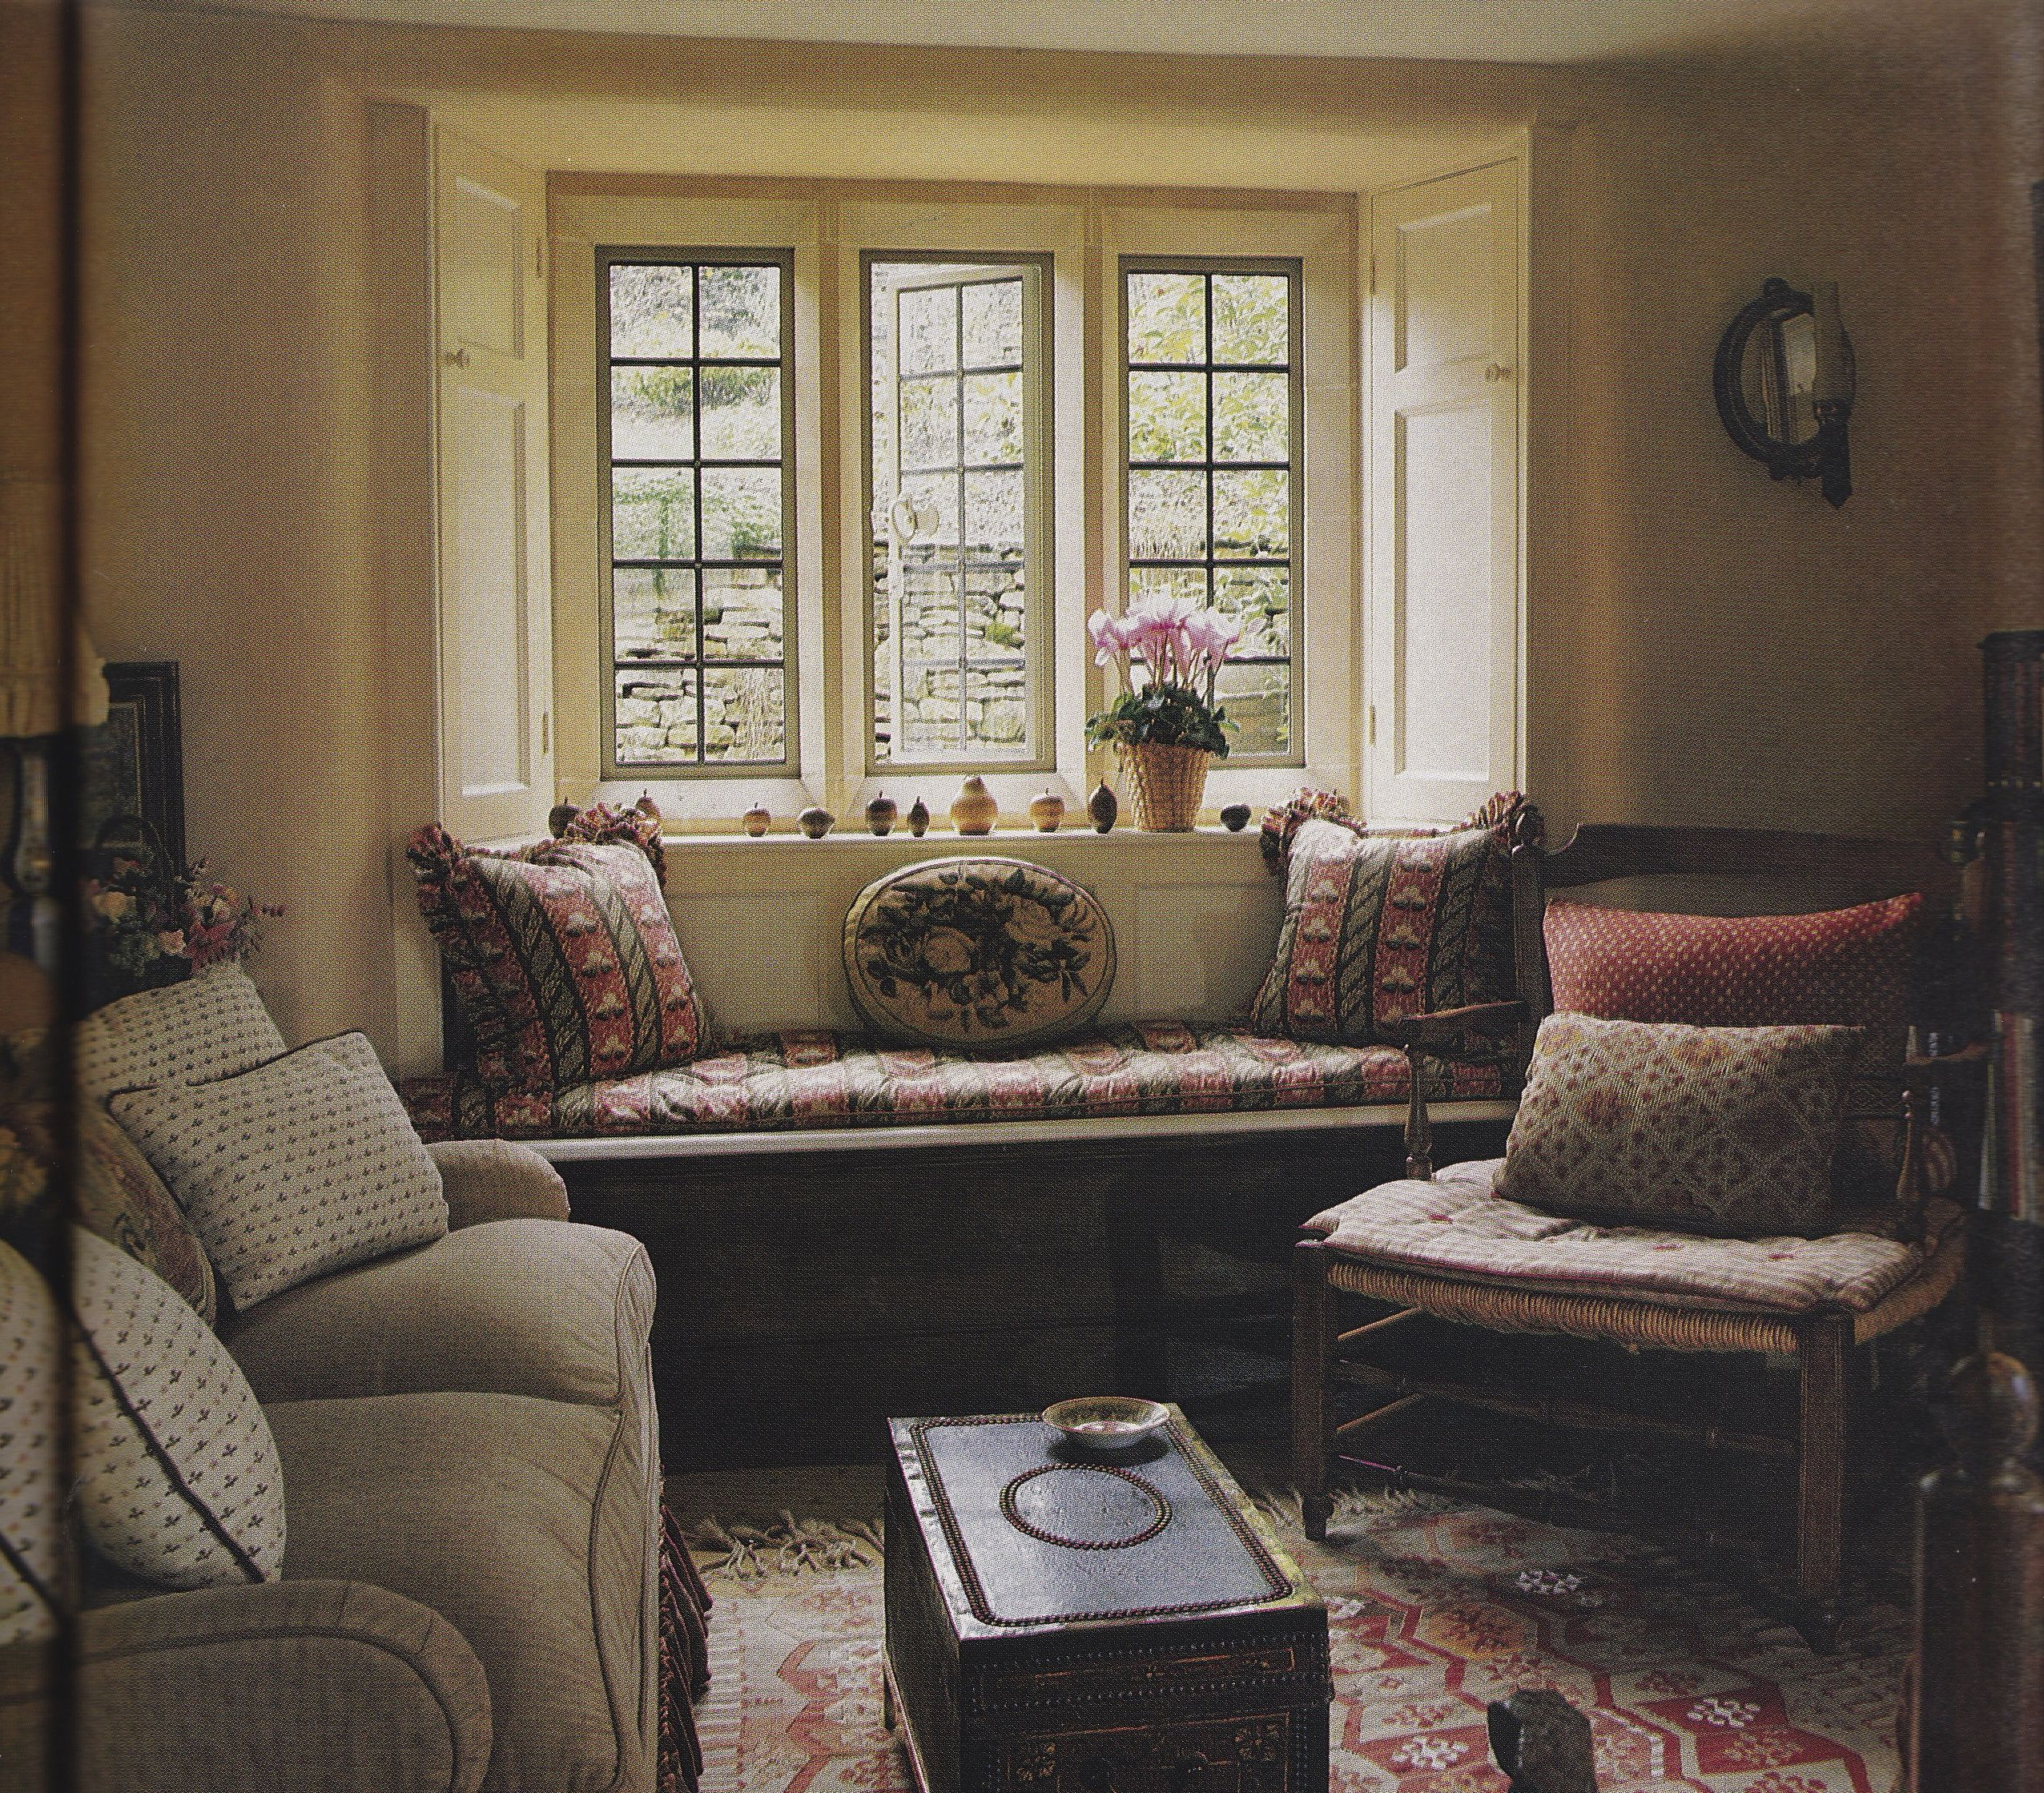 Traditional English Living Room Design Walls For Sitting You Just Need Better Lighting And Less Fussy Pillows